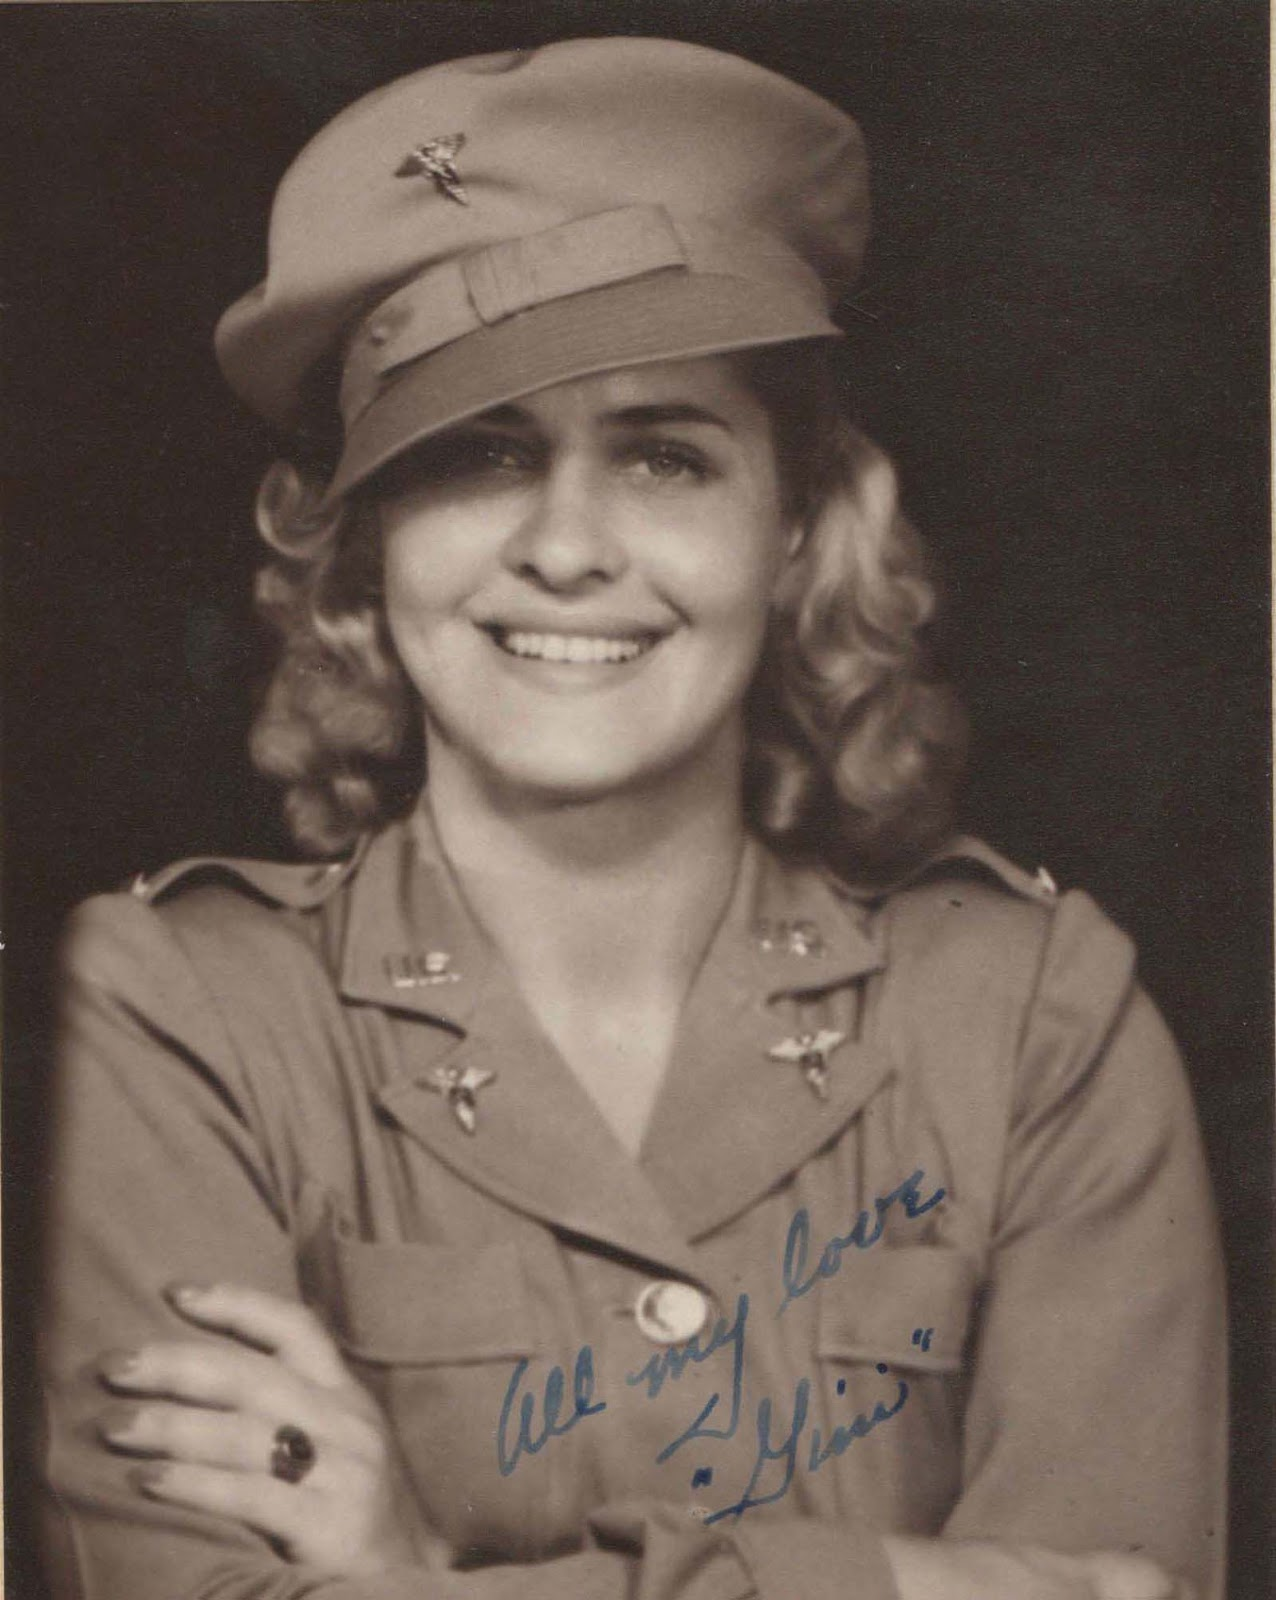 Unfortunately, we don't know who this Army nurse was or why she was wearing US Army threads. Our only information is the postcard itself, that she was in Australia during November 1942 - and she might have been somewhere else in the Pacific. Those look like tropical fatigues. However, whoever or wherever she was... her presence here is appreciated.